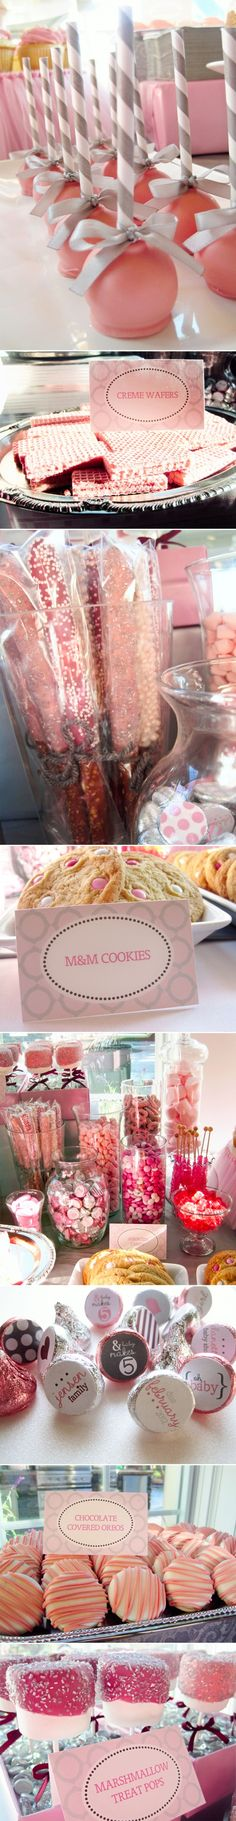 isn't this sweet? dessert bar in pink and grey (could do blue for a boy!) #BeautifulBabyShower